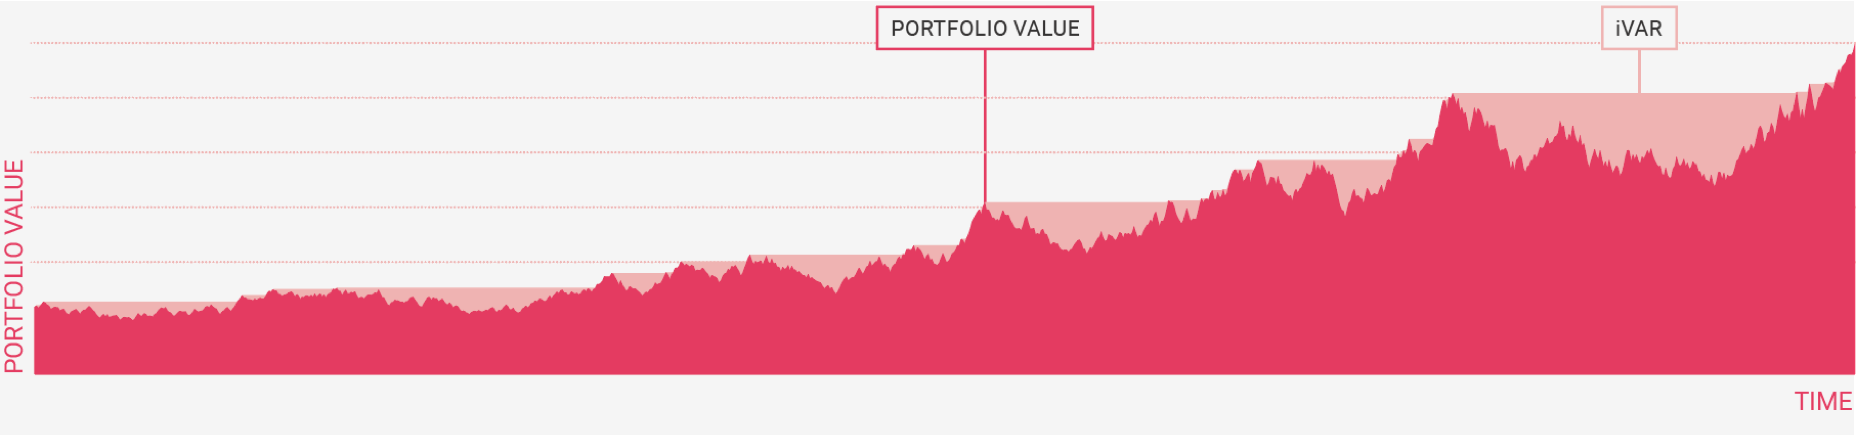 Portfolio value graph